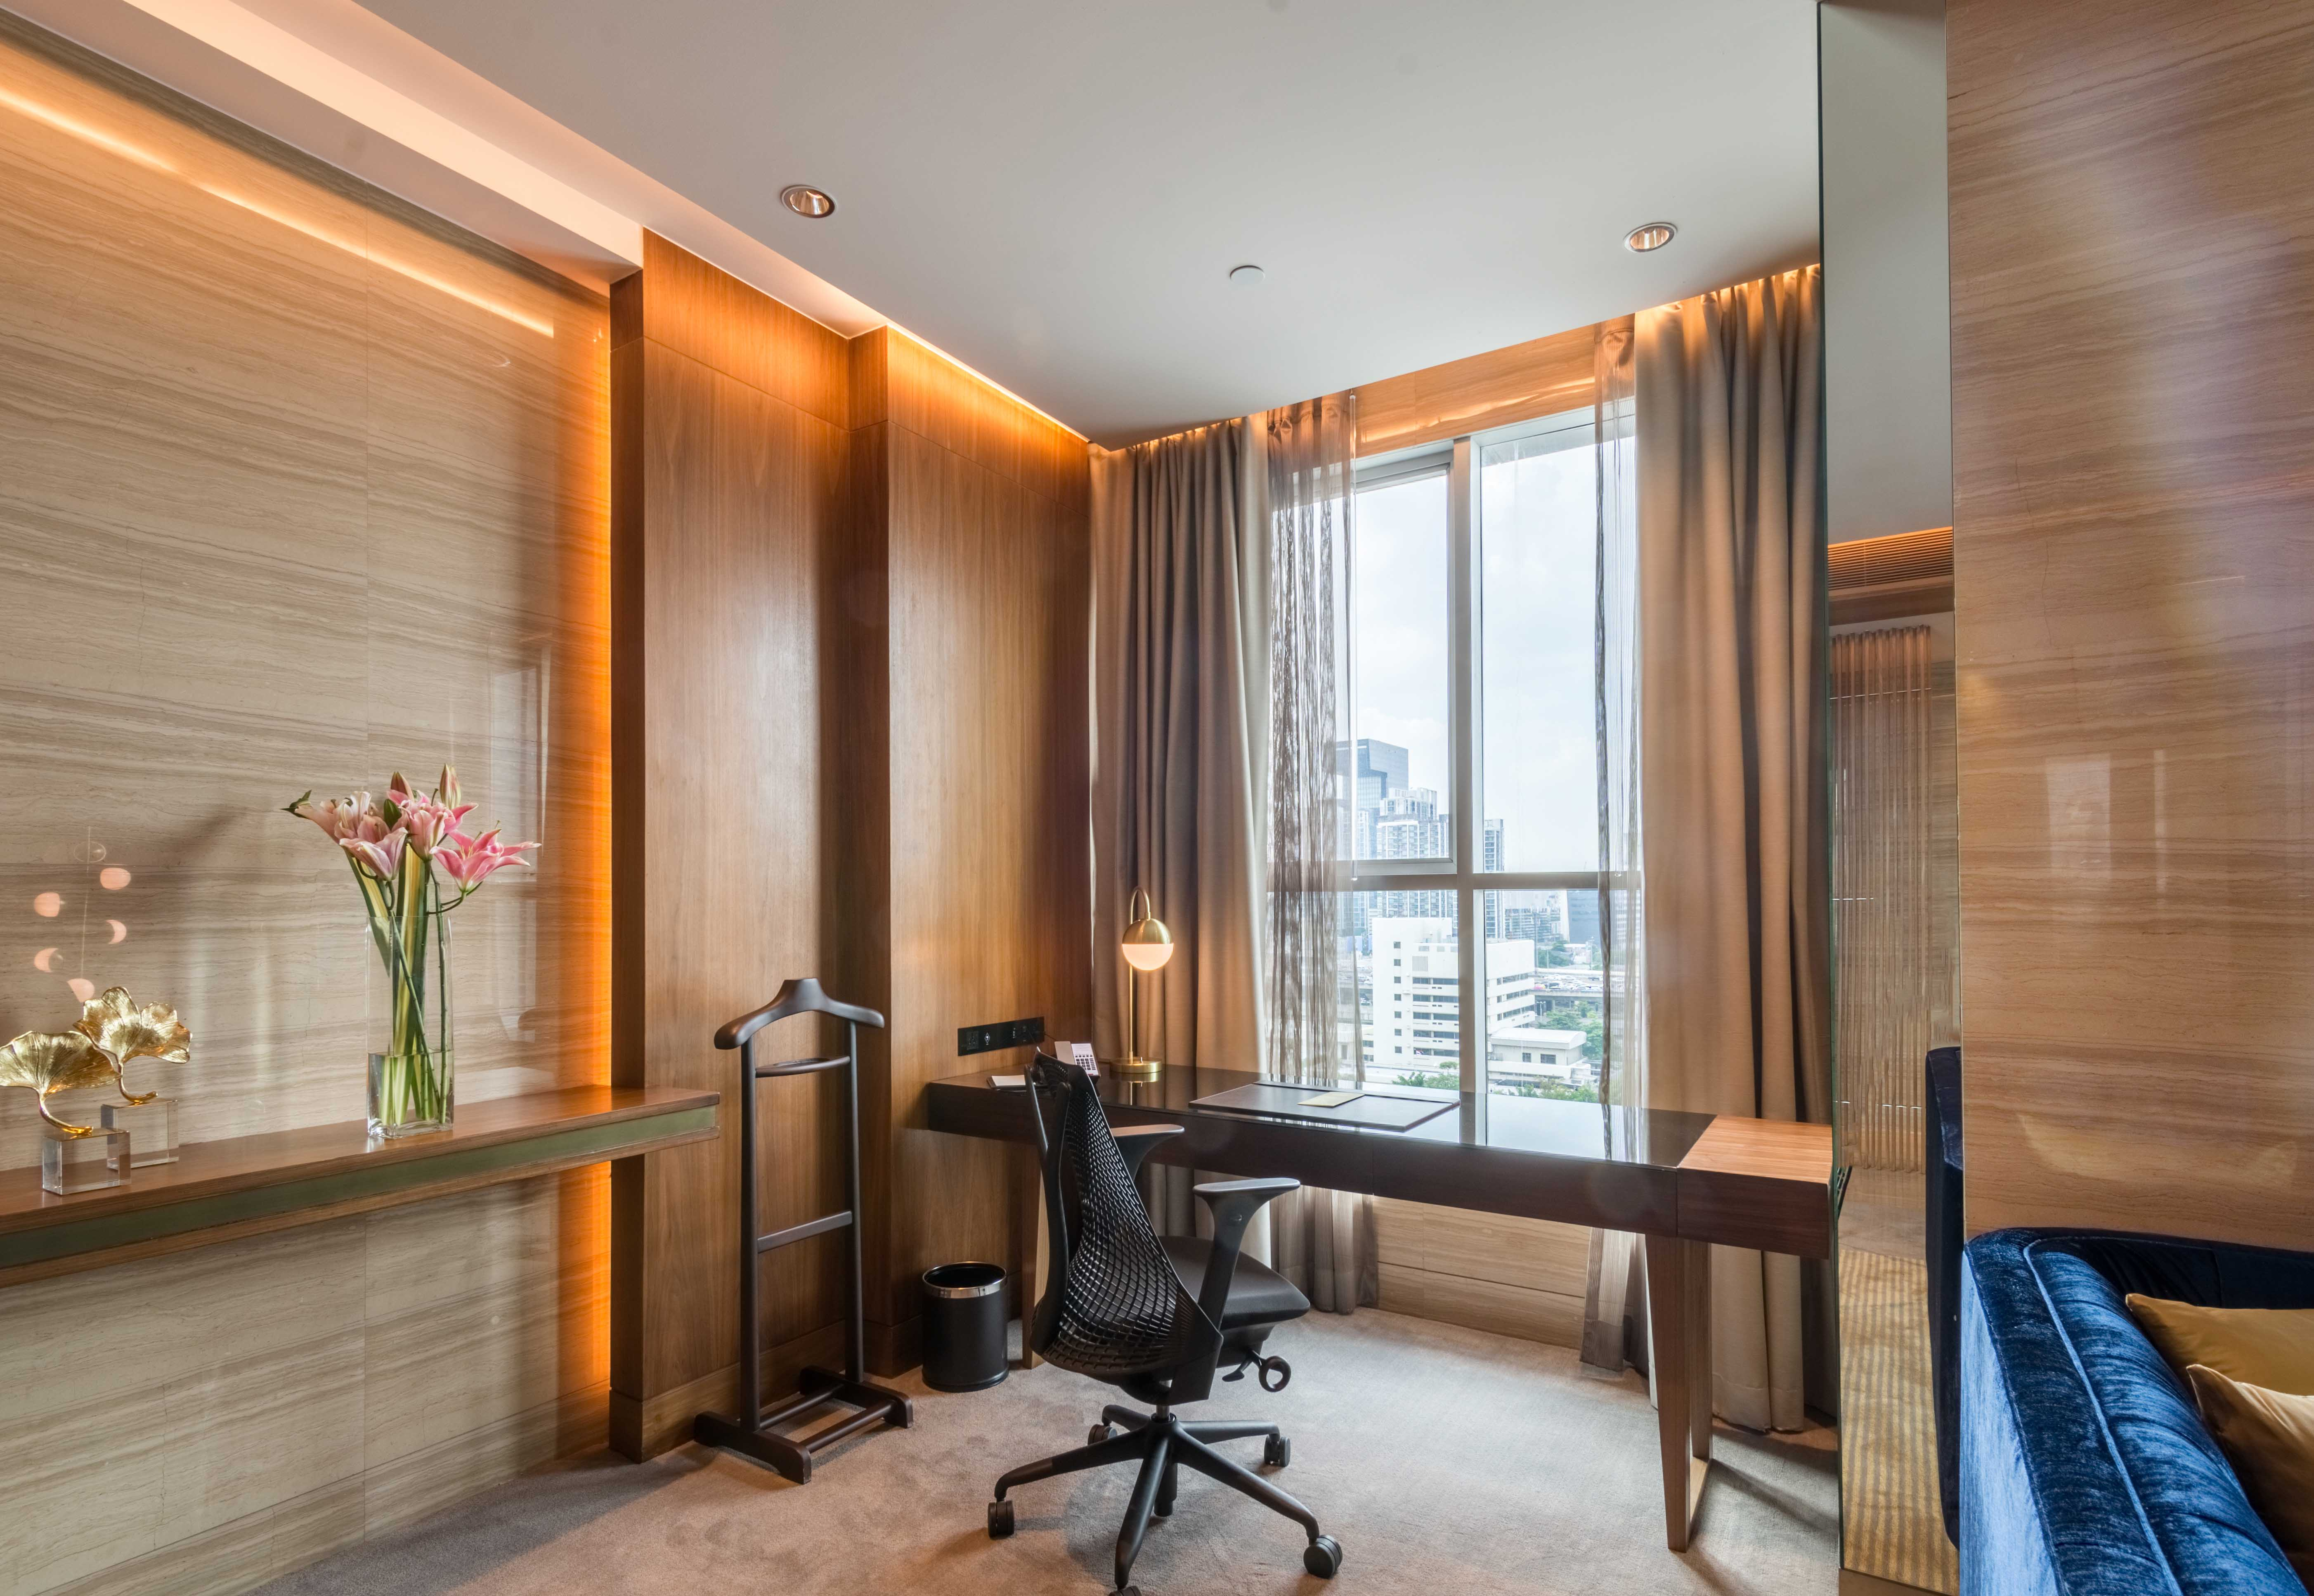 Suite work desk resize Lancaster bangkok4 (3 of 3)